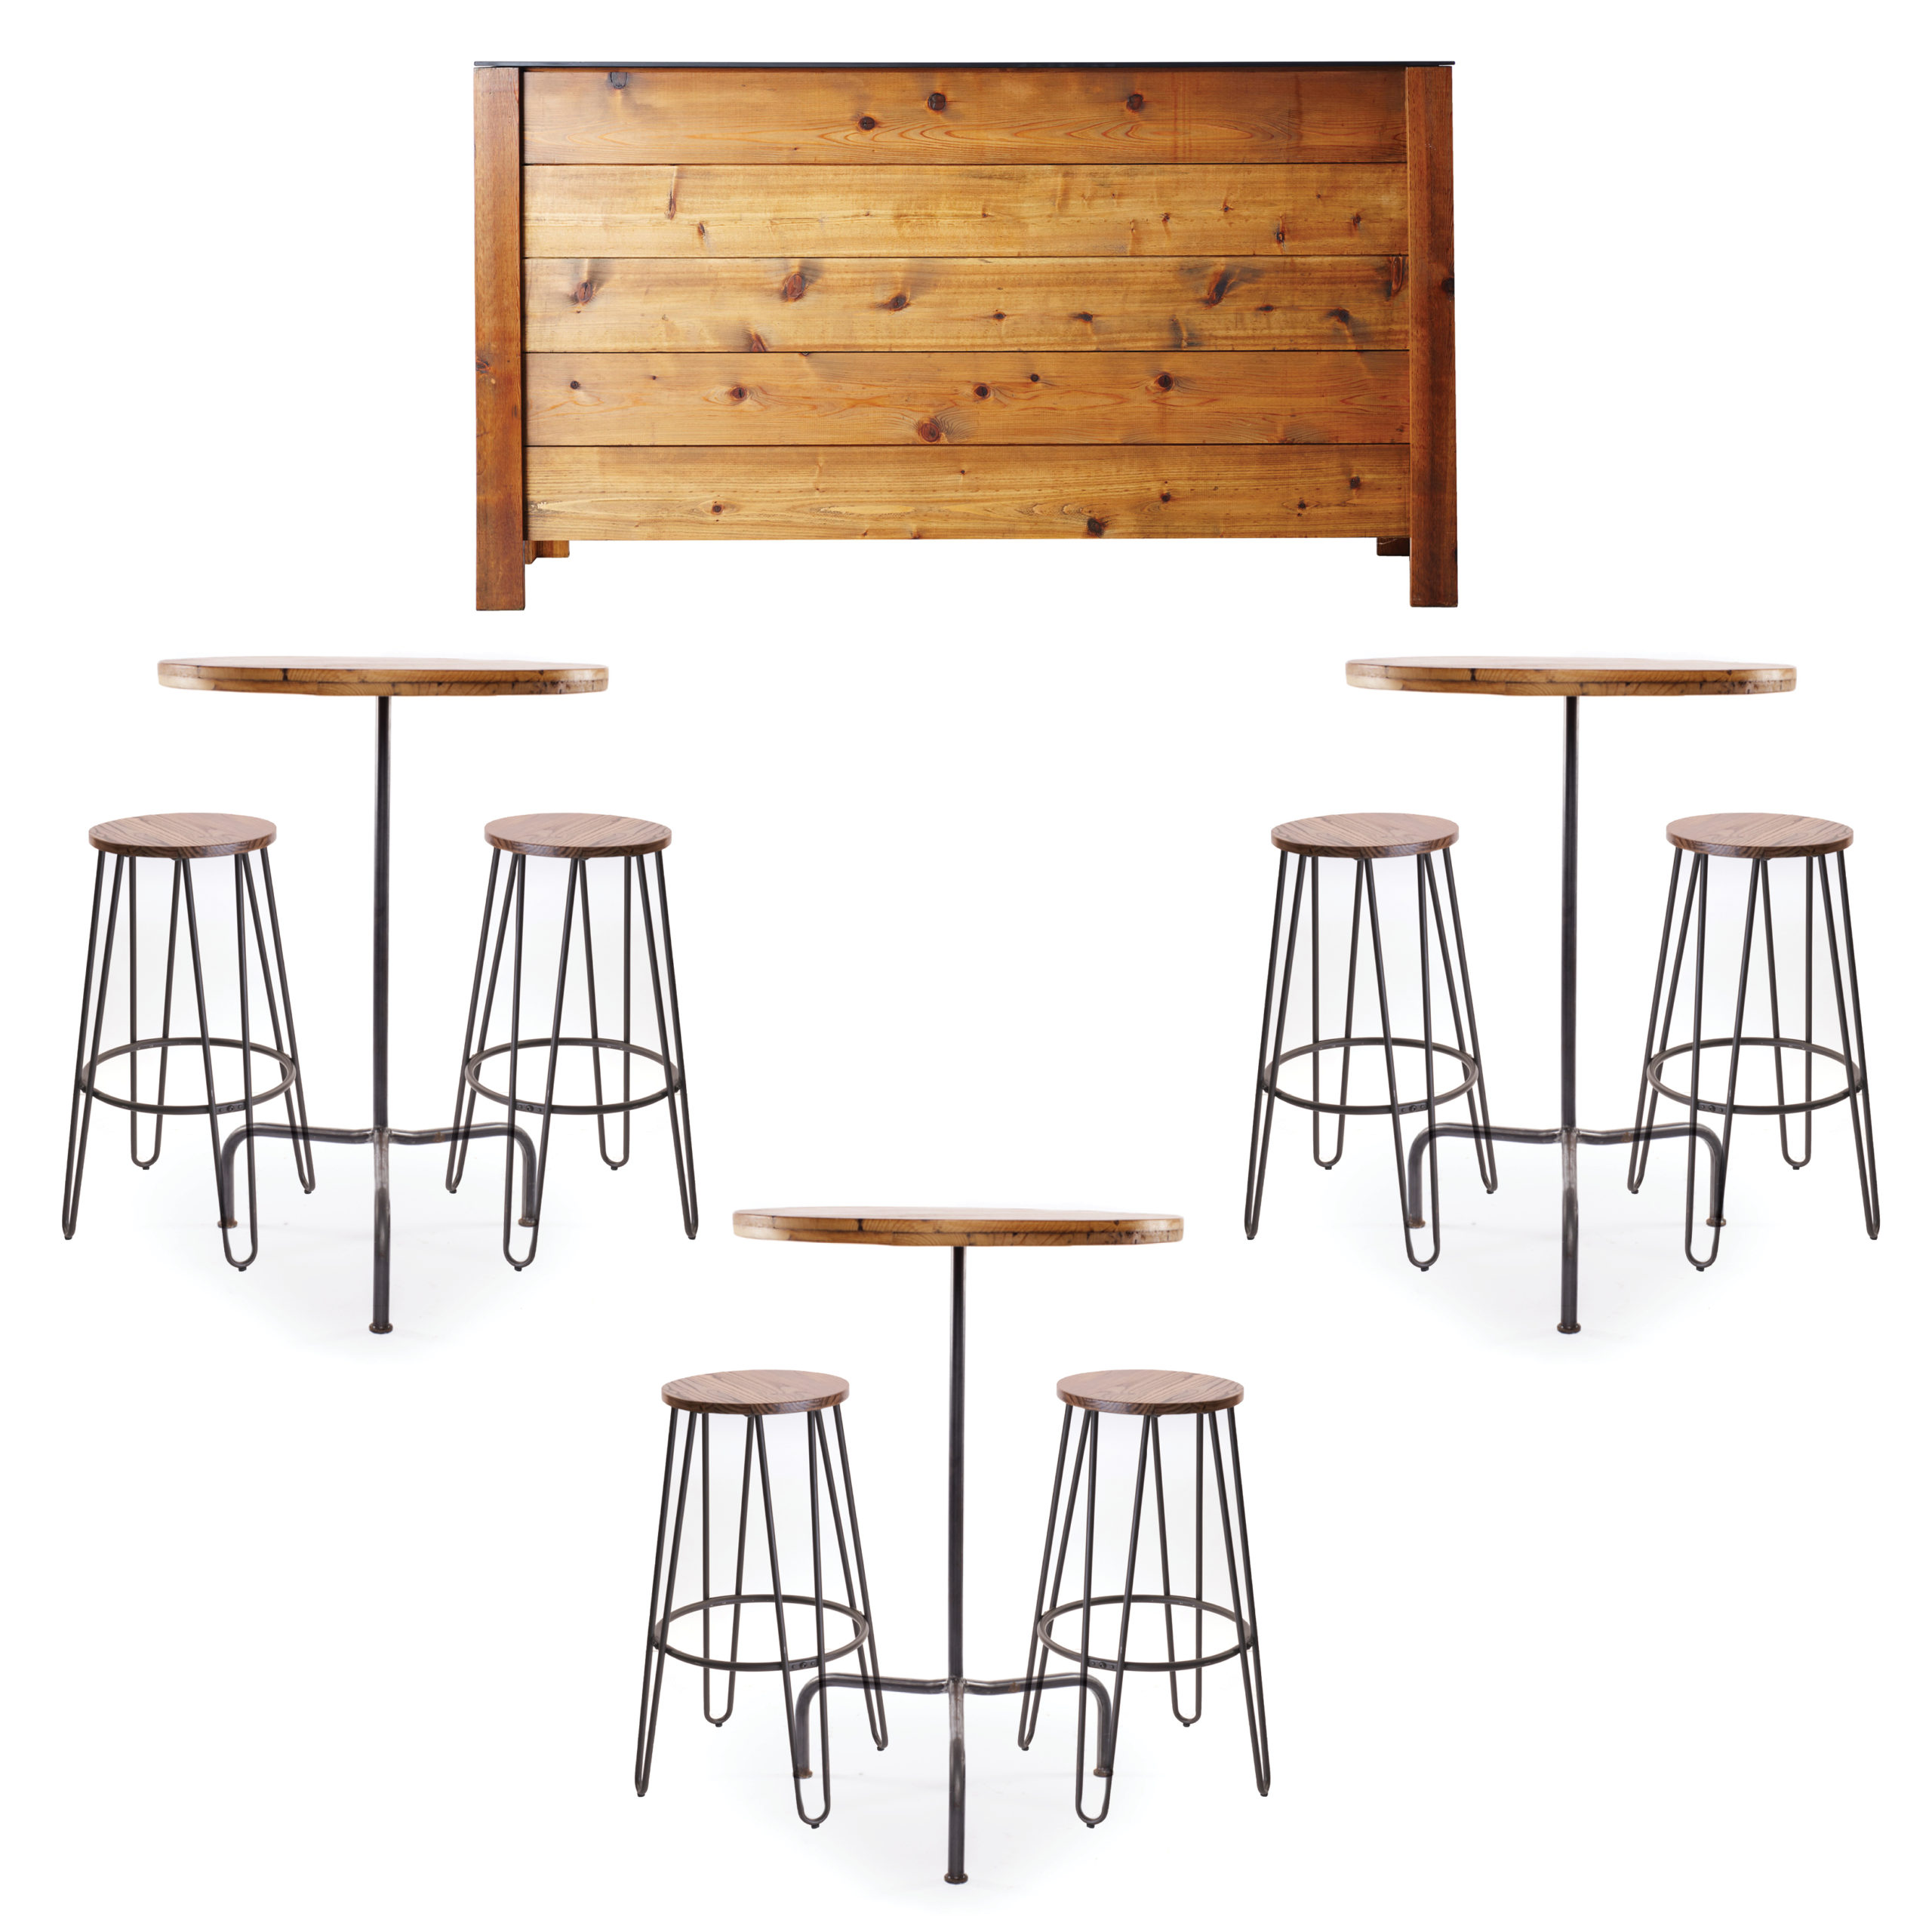 Sip and Seat Bar Collection Rental | A La Crate Rentals Madison, WI | Handbuilt cedar shiplap bar, wood hairpin stools and barn wood cocktail tables